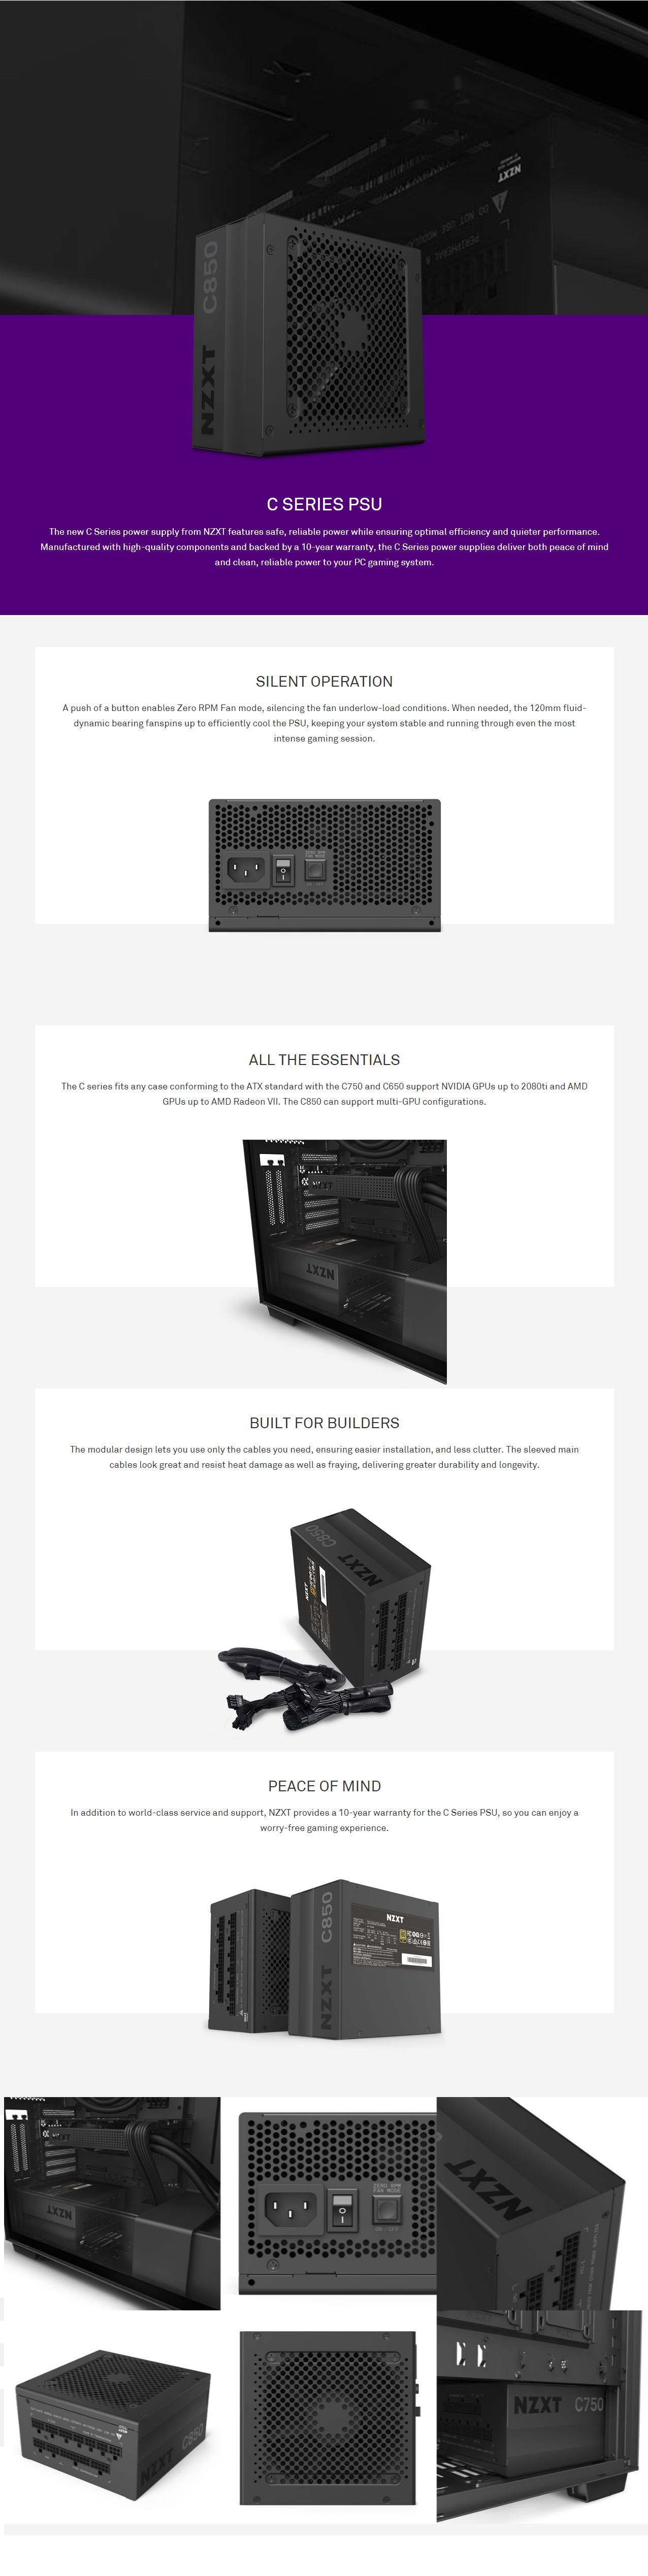 A large marketing image providing additional information about the product NZXT C Series C850 850W Modular 80Plus Gold ATX Power Supply - Additional alt info not provided